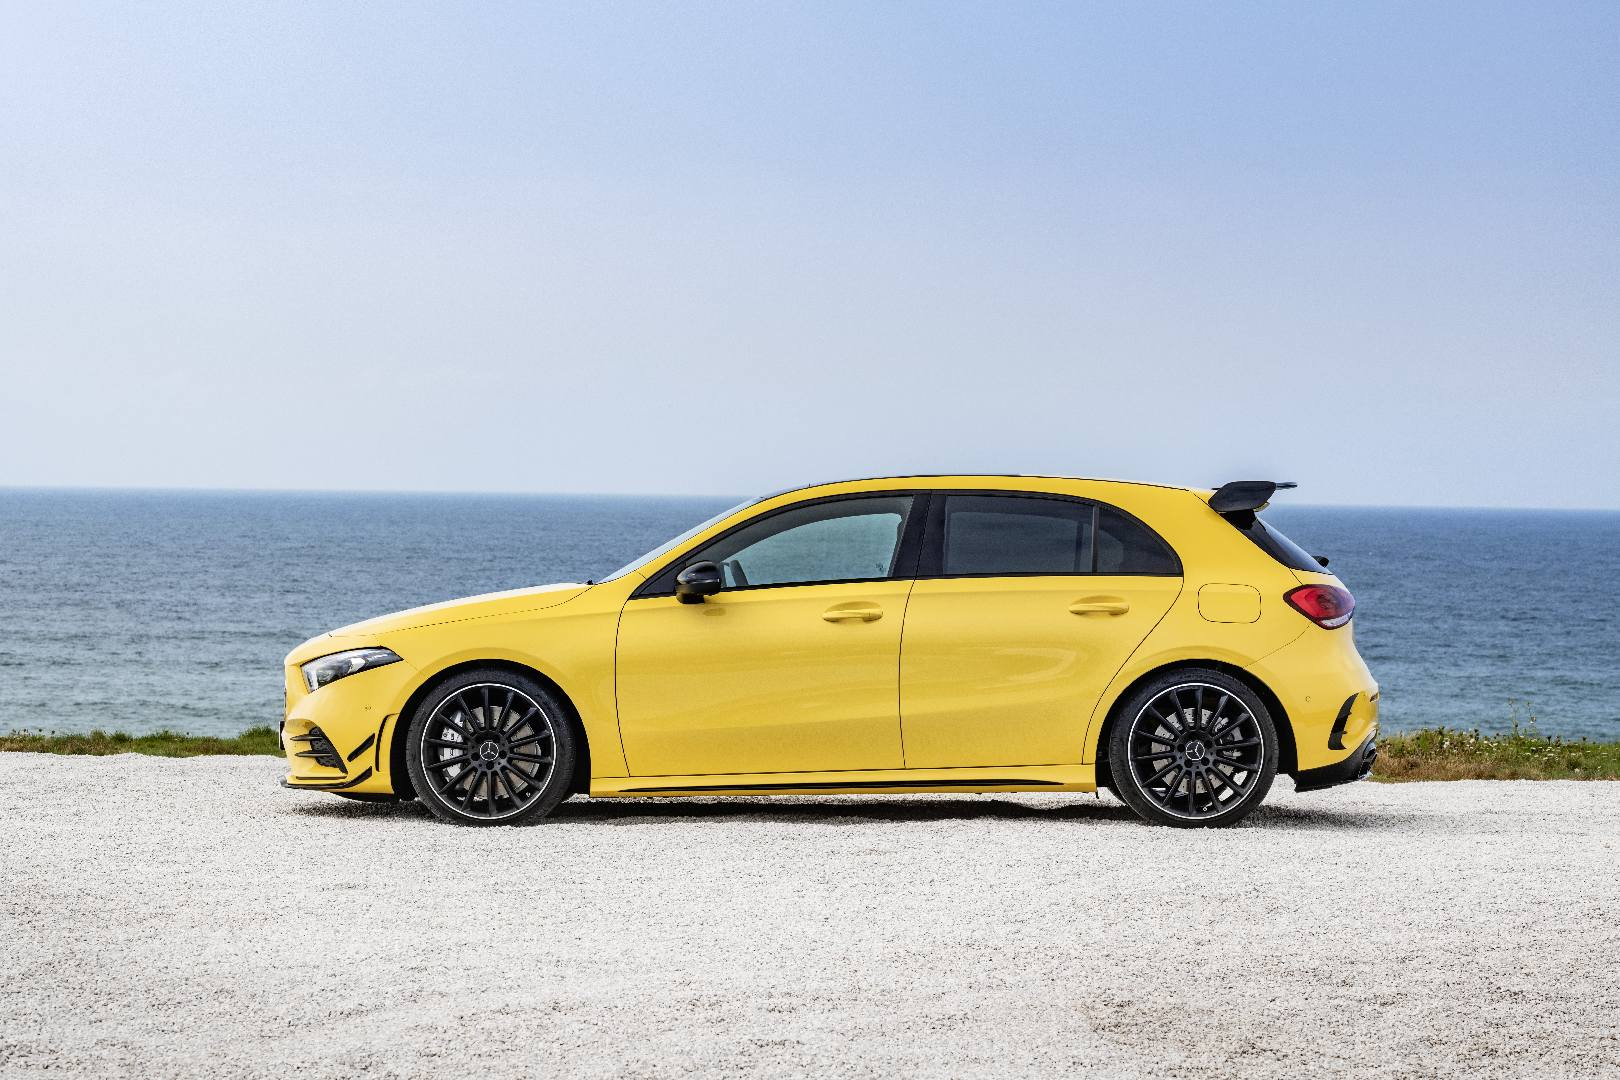 Mercedes-AMG A35 debuts with 302 HP, All-wheel drive